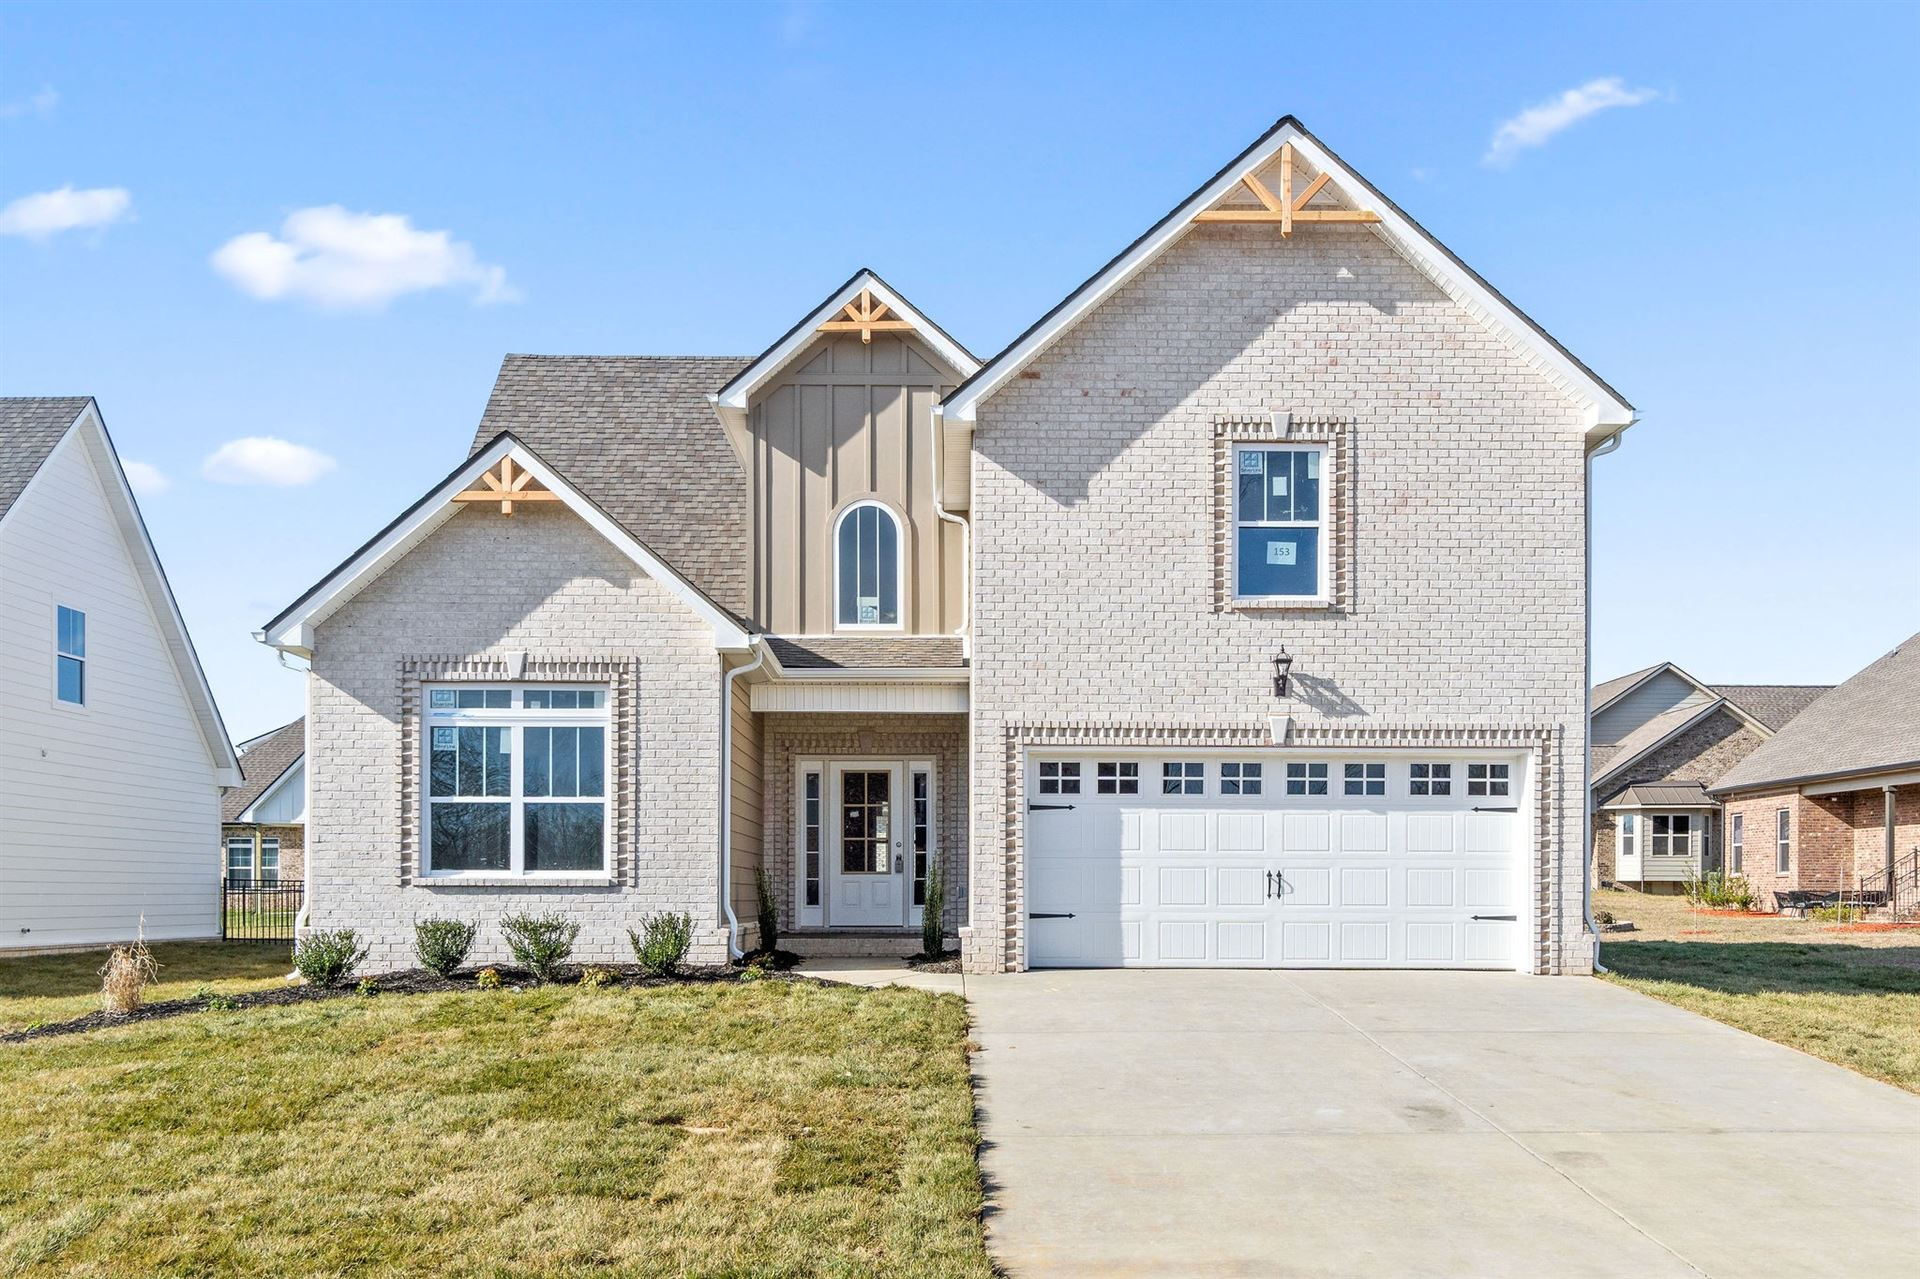 153 Hereford Farms, Clarksville, TN 37043 - MLS#: 2201419